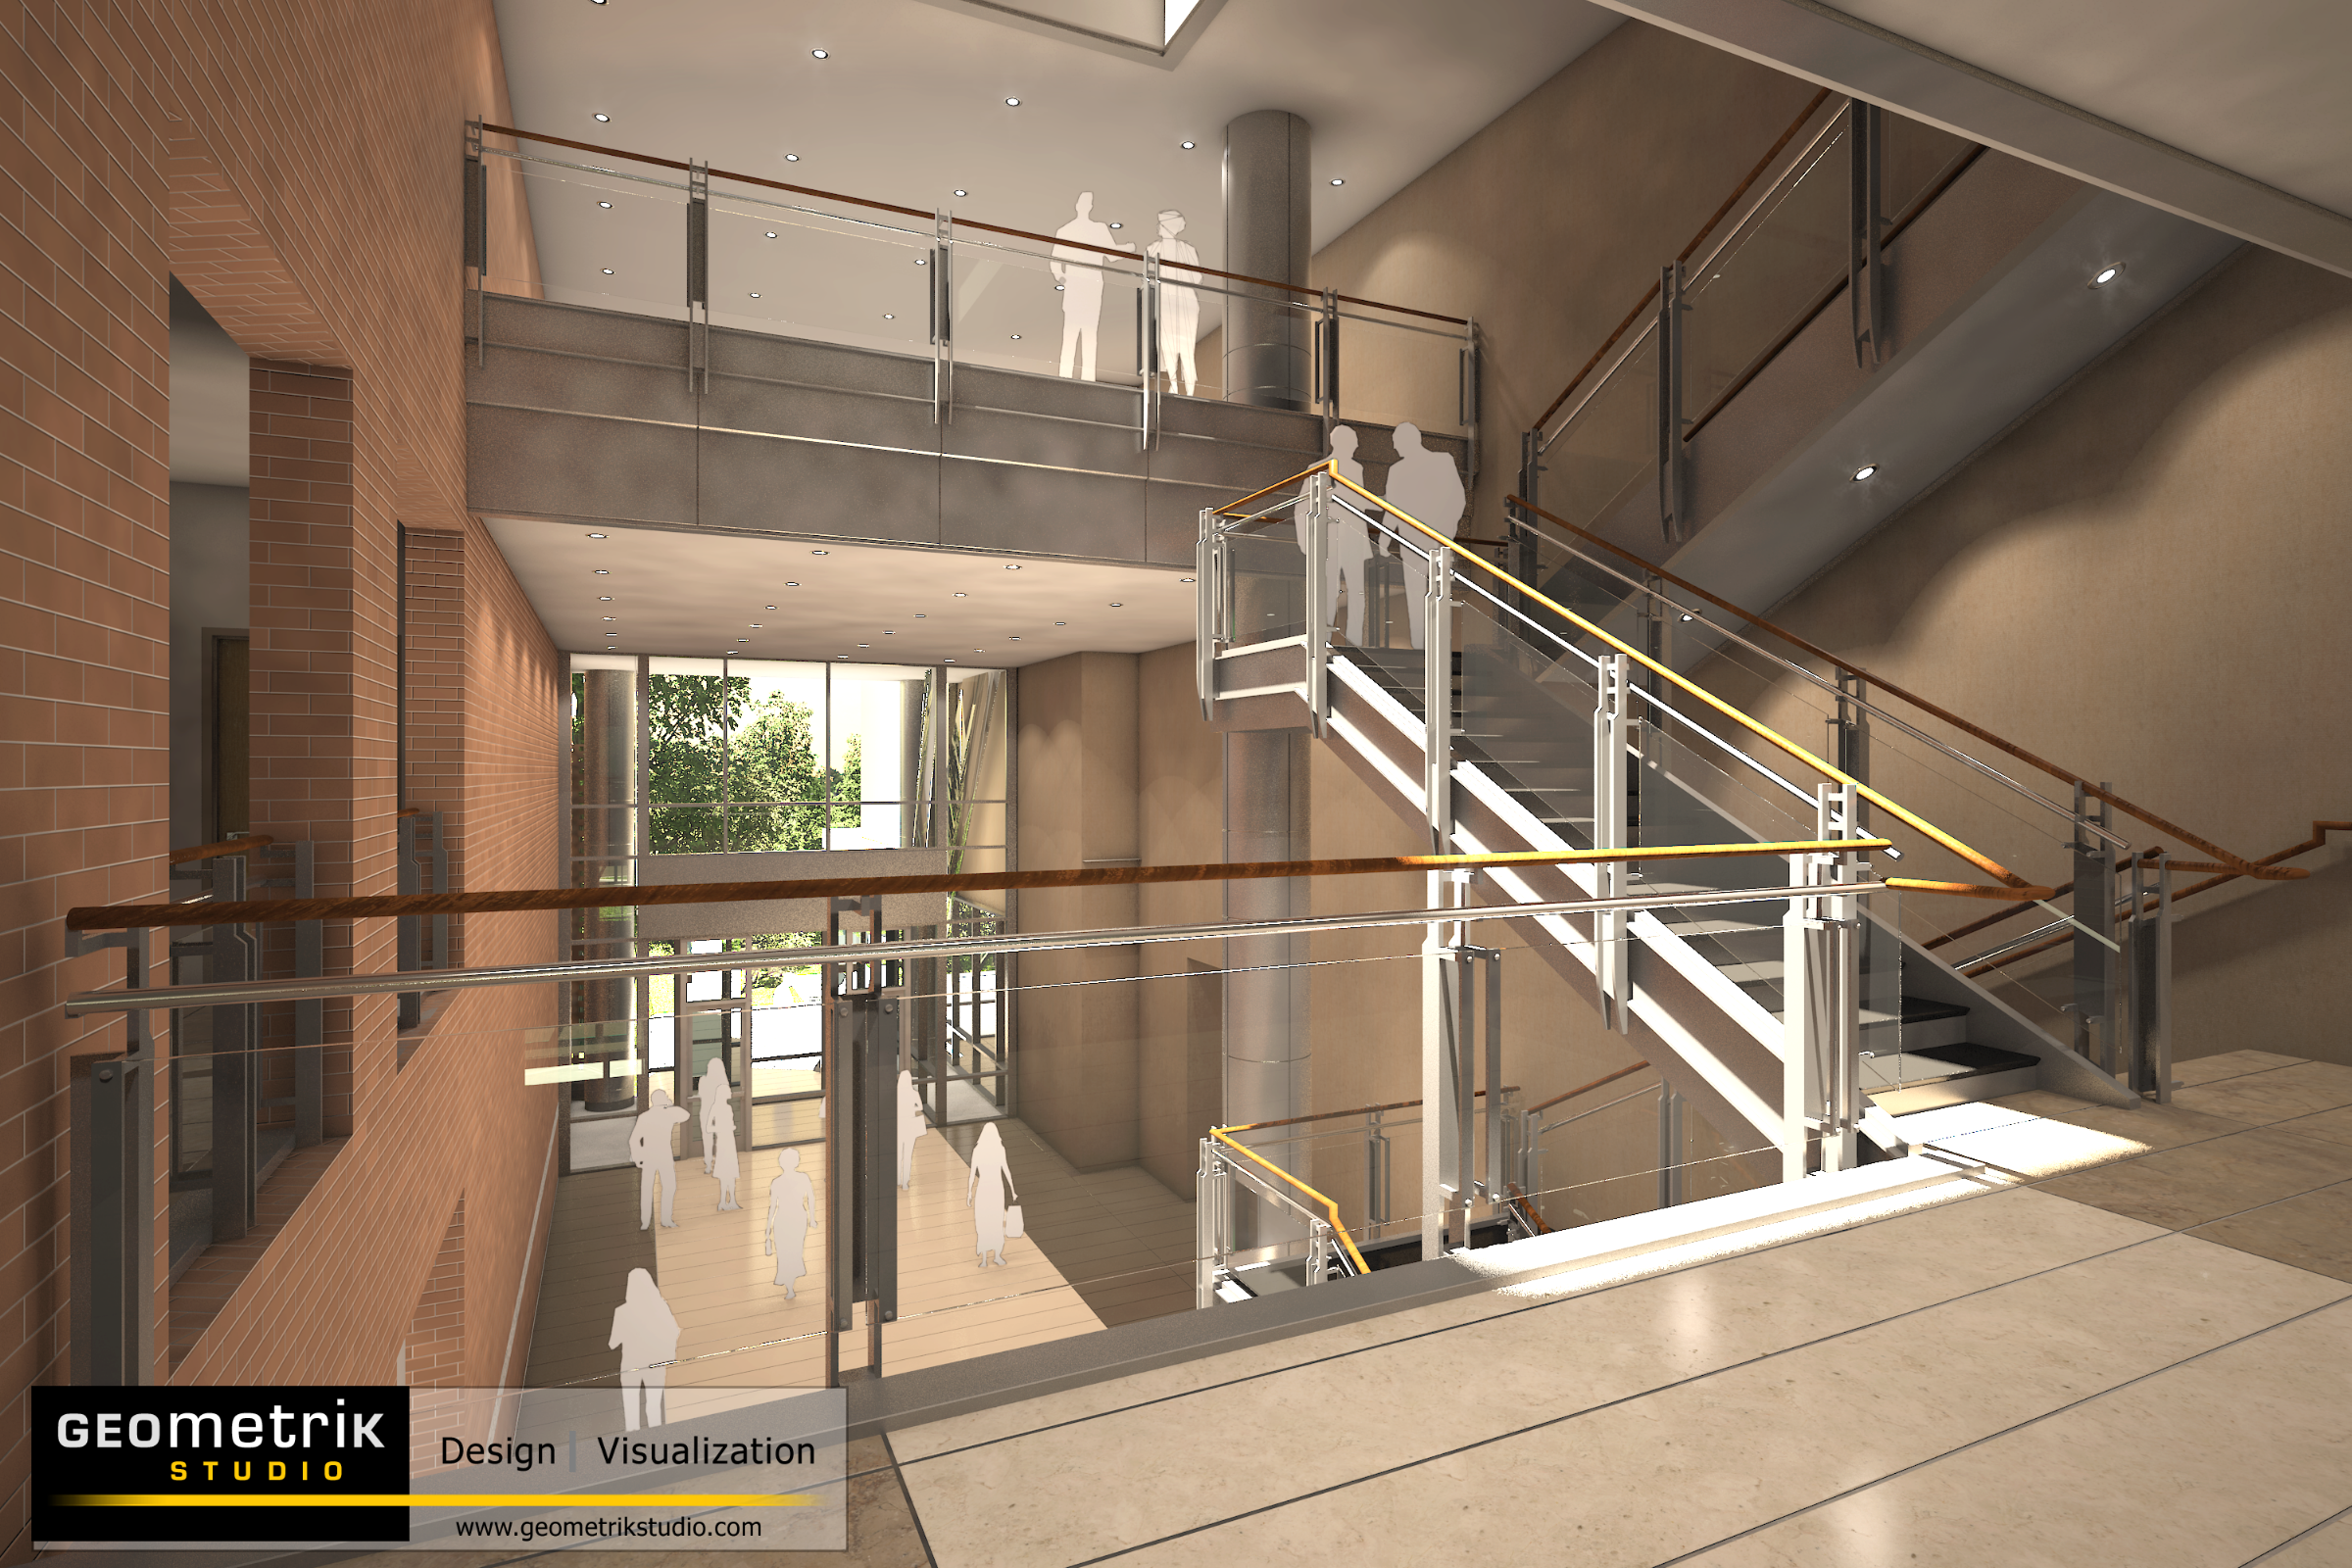 30220-TEVA_INTERIOR_12_00004_Retouched-01_TimF-01_2400px.png